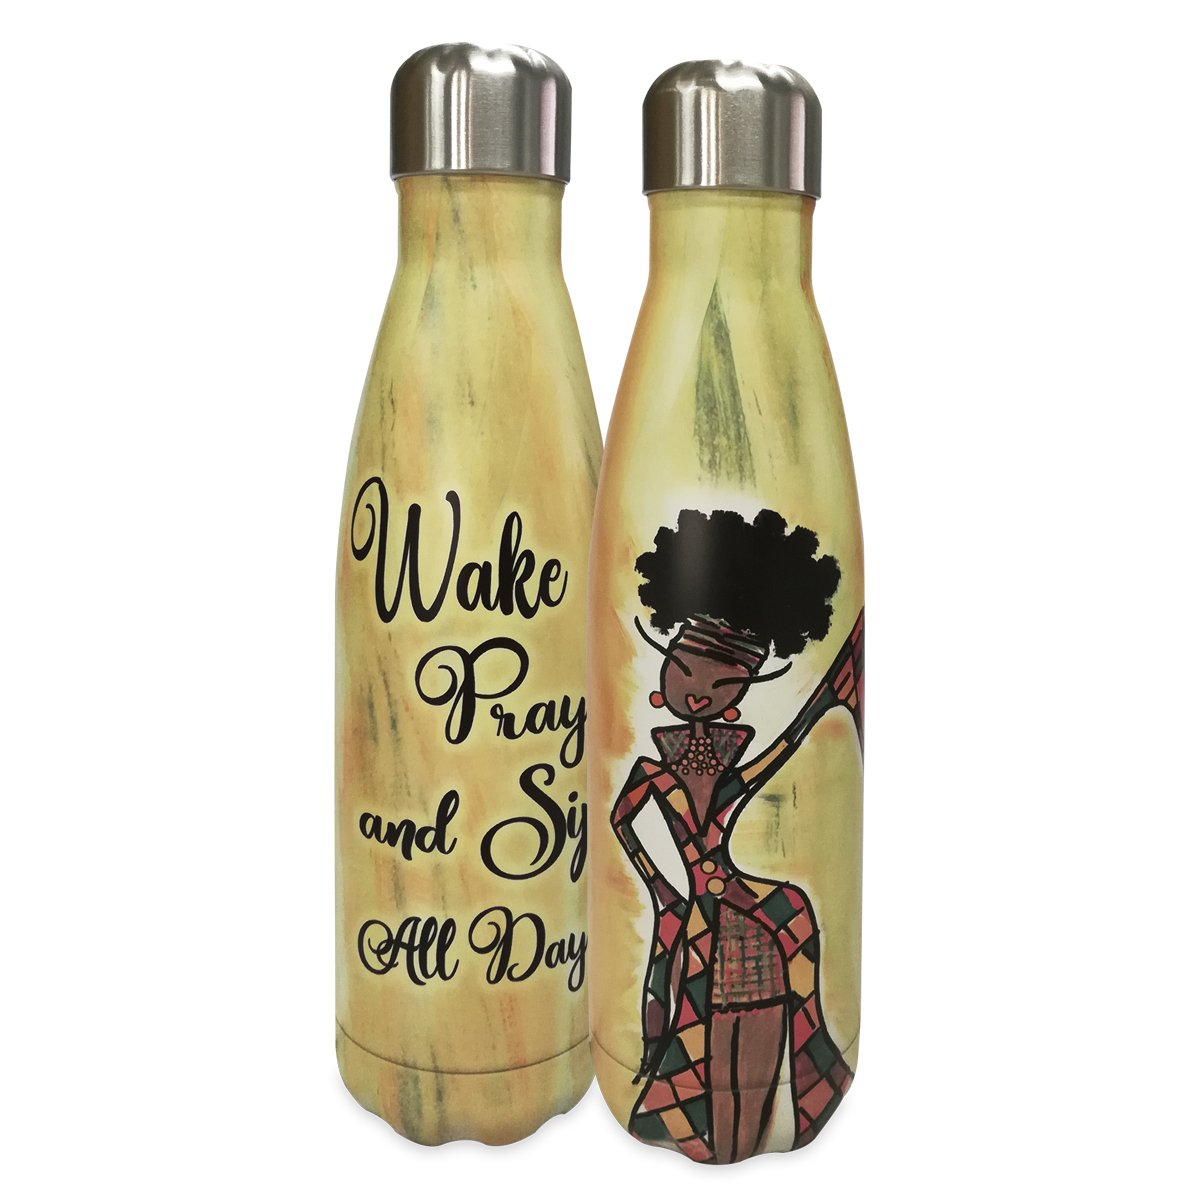 Wake, Pray & Sip All Day: African American Stainless Steel Bottle by Kiwi McDowell